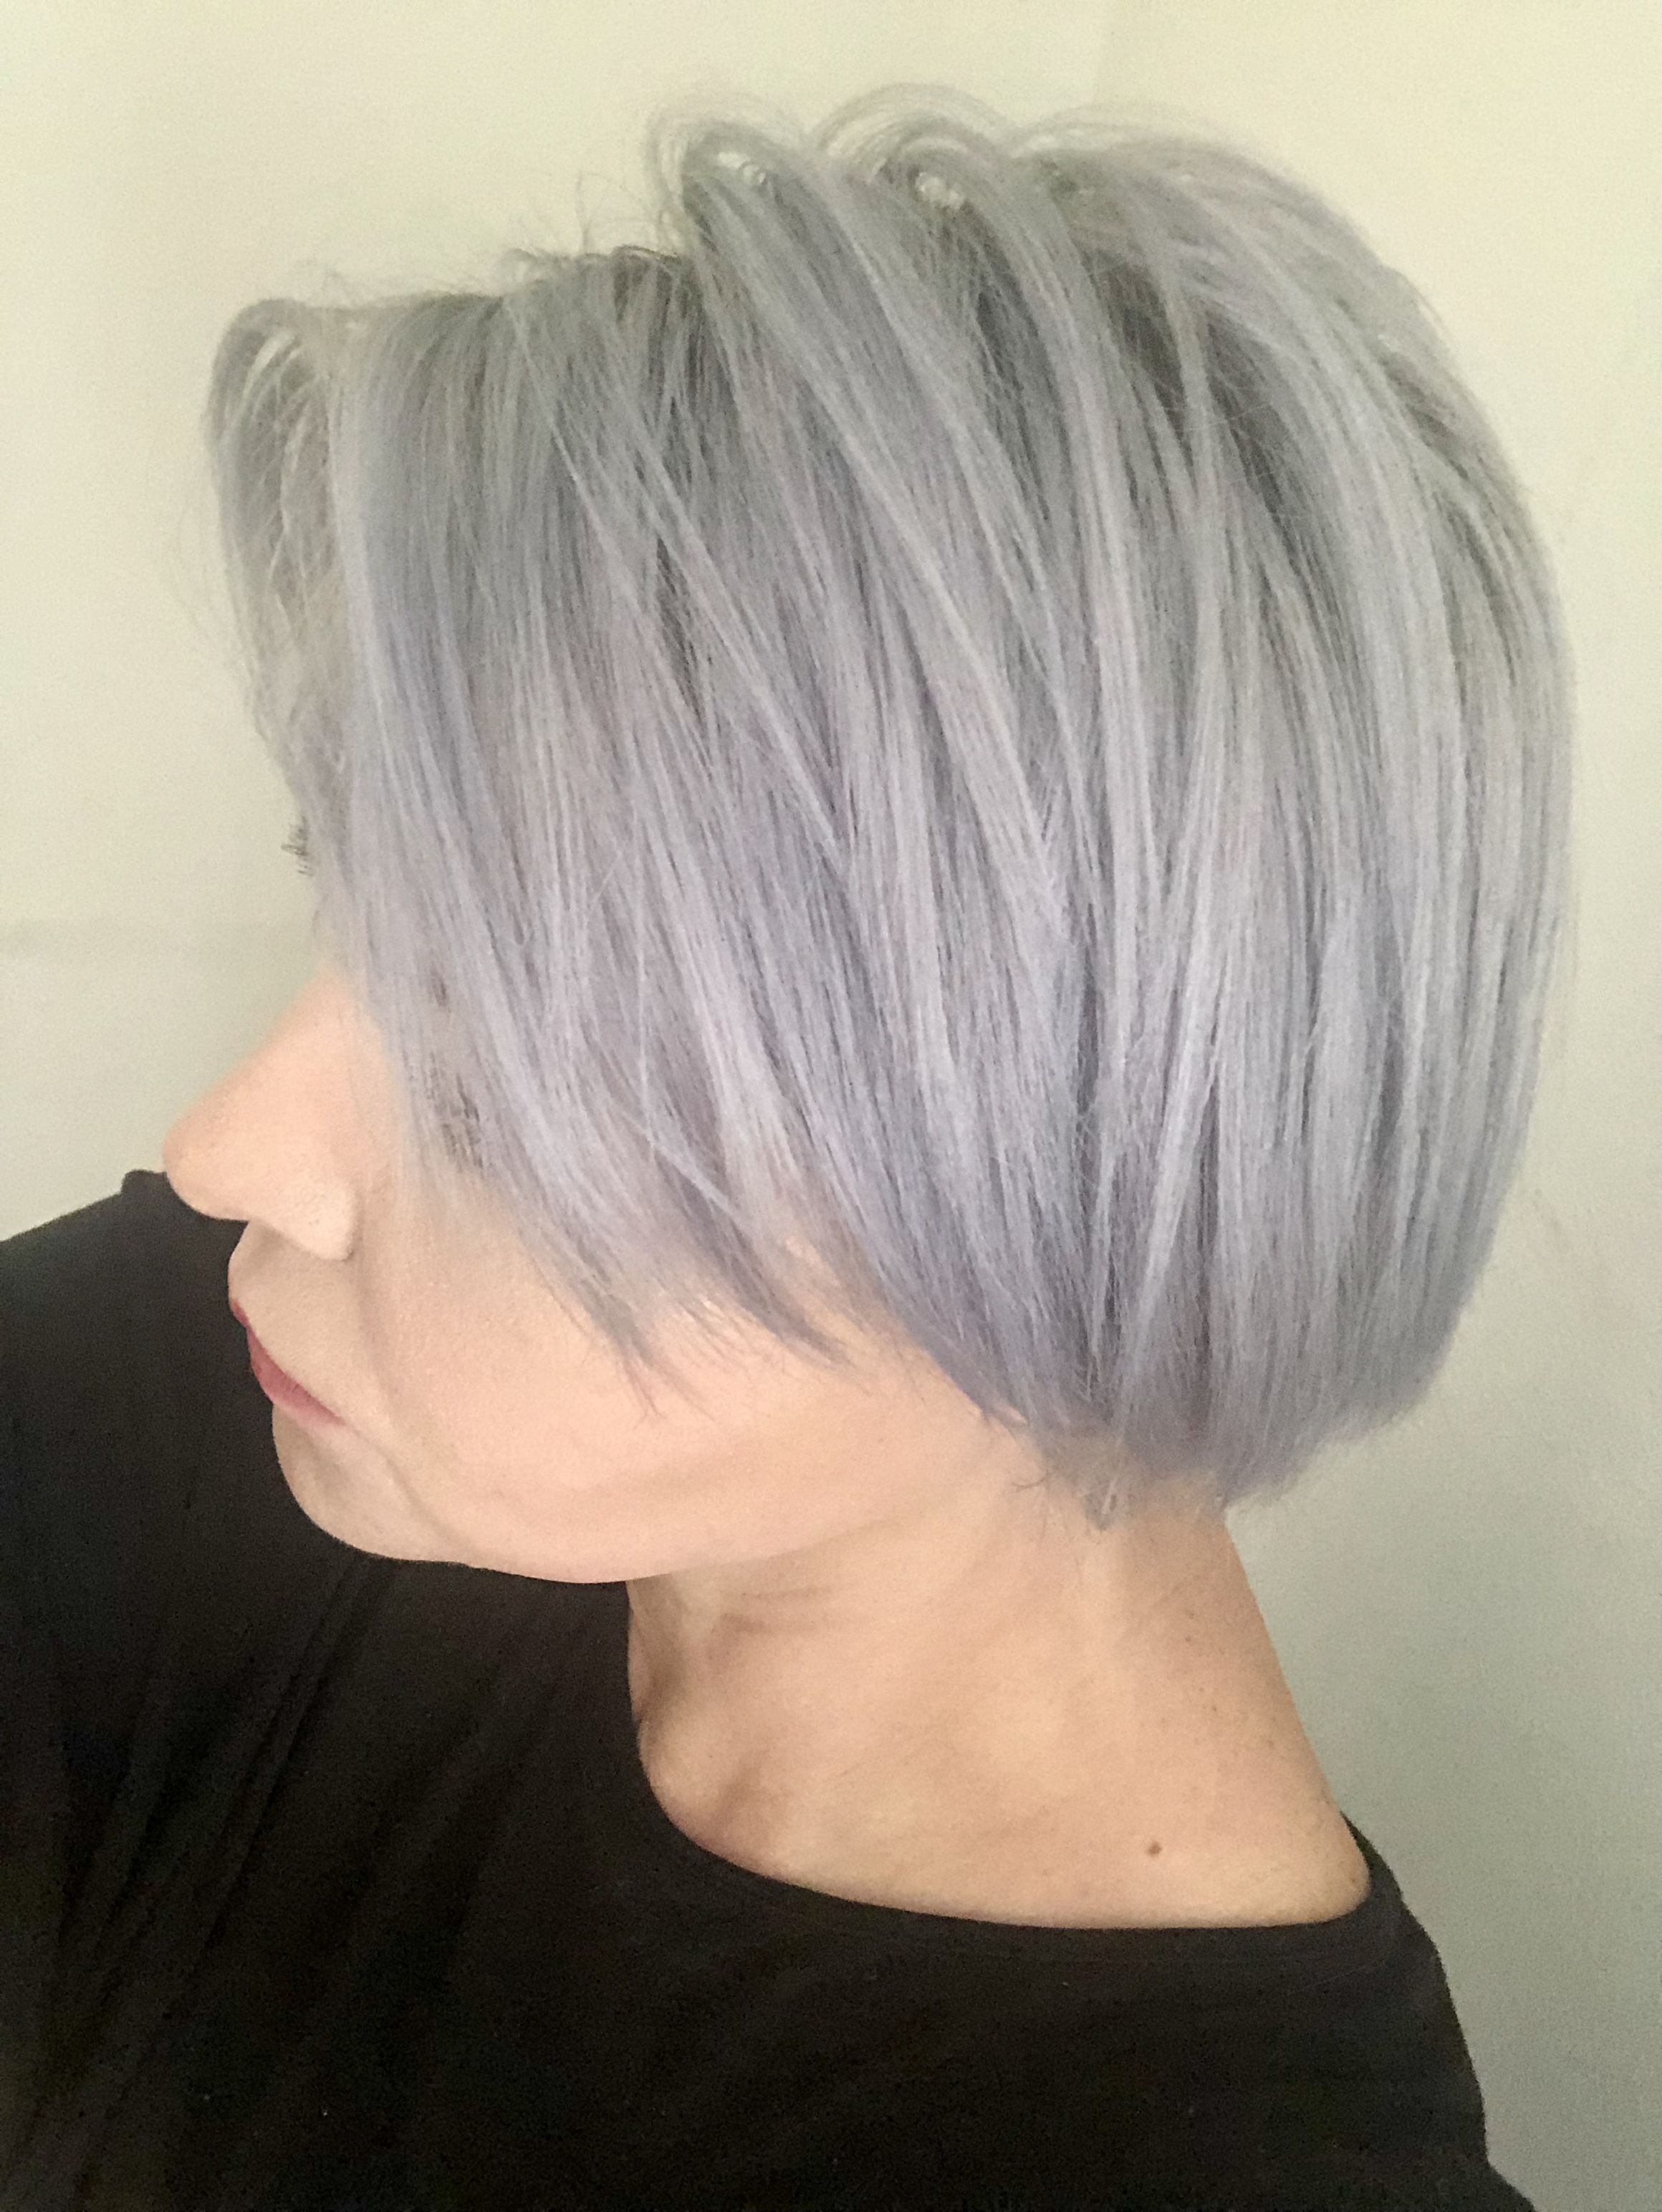 Pinstanislava Natale On Grey Silver Hair | Pinterest | Bob Hair Throughout Wispy Silver Bob Hairstyles (View 17 of 20)